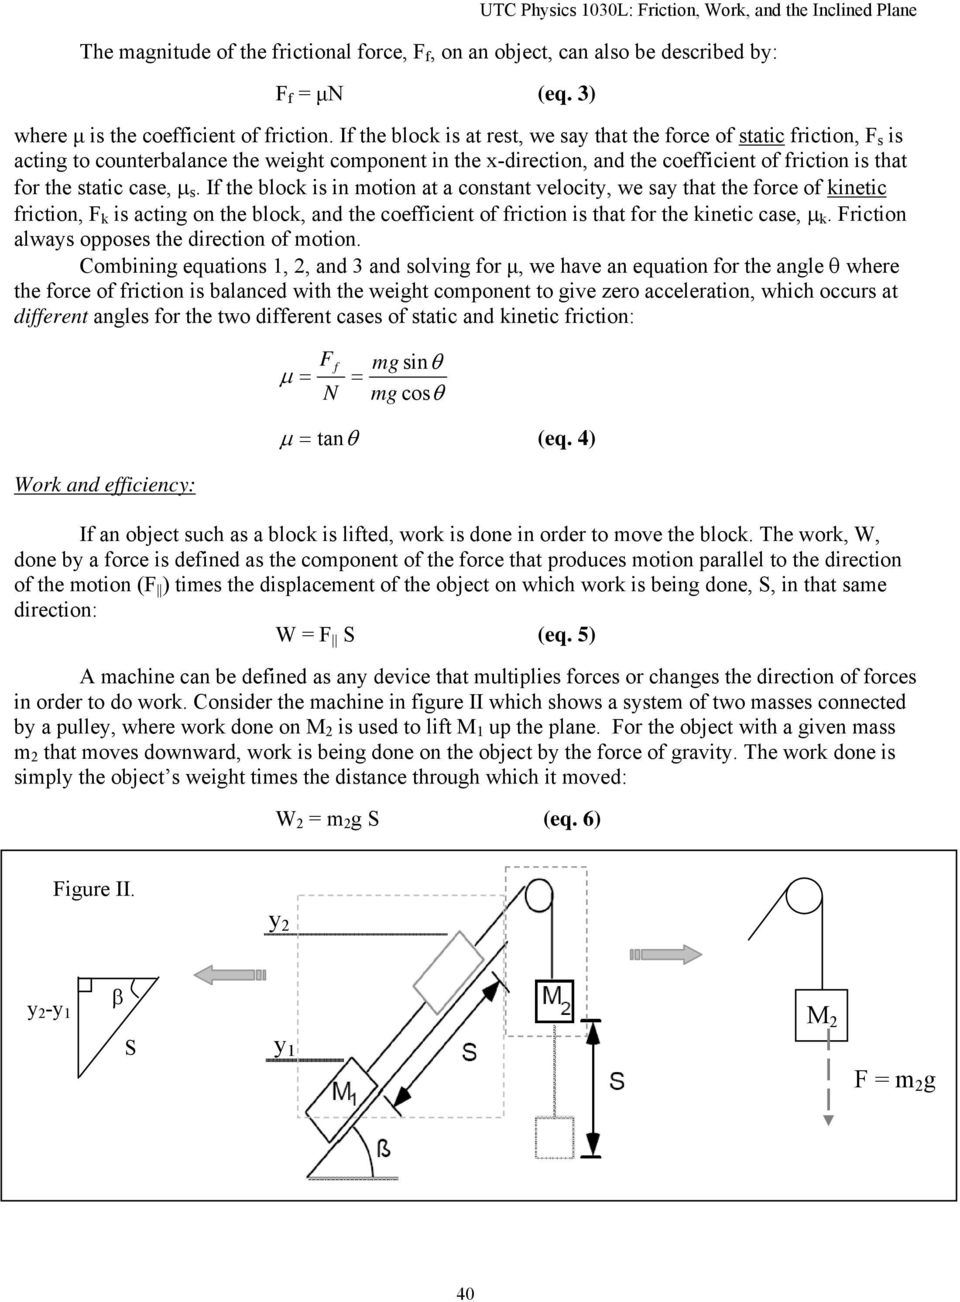 μ s. If the bloc is in motion at a constant velocity, we say that the force of inetic friction, F is acting on the bloc, and the coefficient of friction is that for the inetic case, μ.